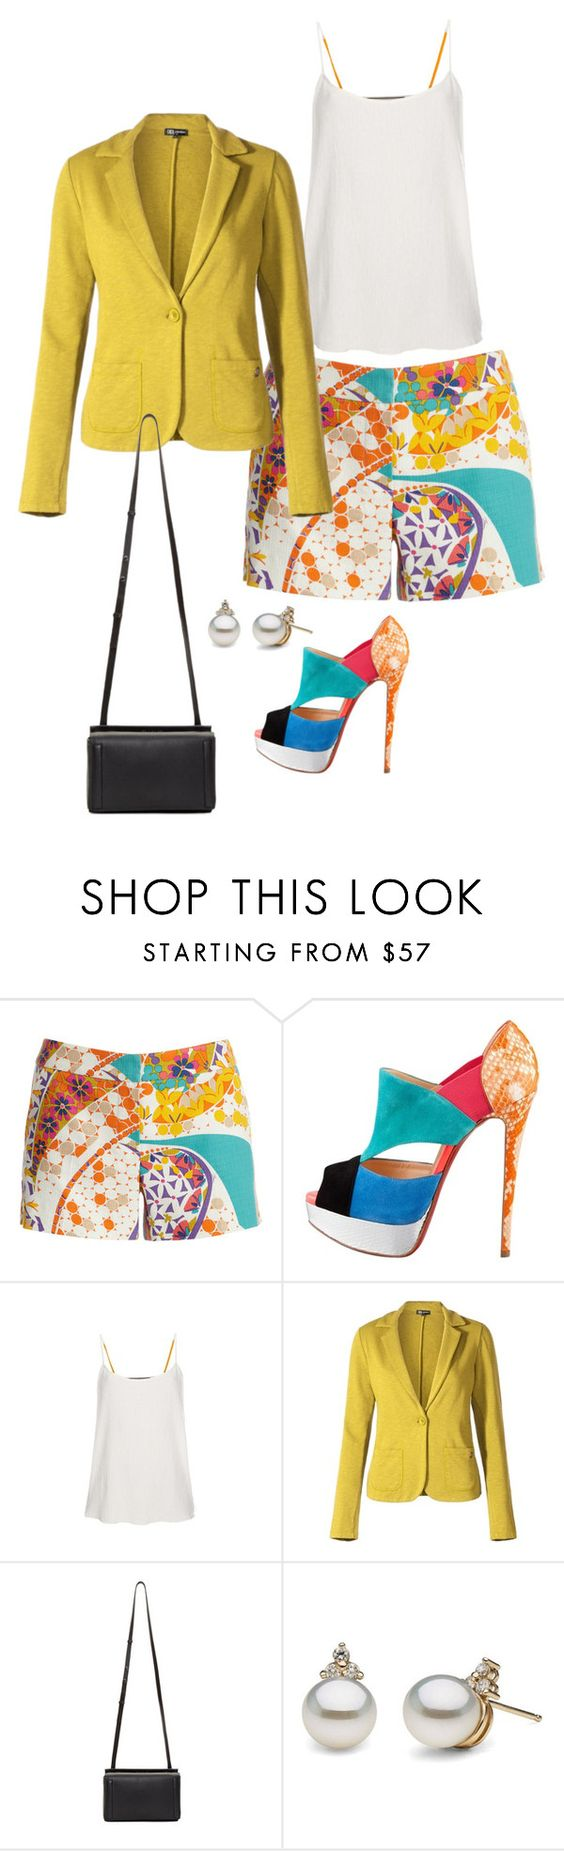 """Untitled #3781"" by bbossboo ❤ liked on Polyvore featuring Trina Turk, Christian Louboutin, Paul Smith and rag & bone"